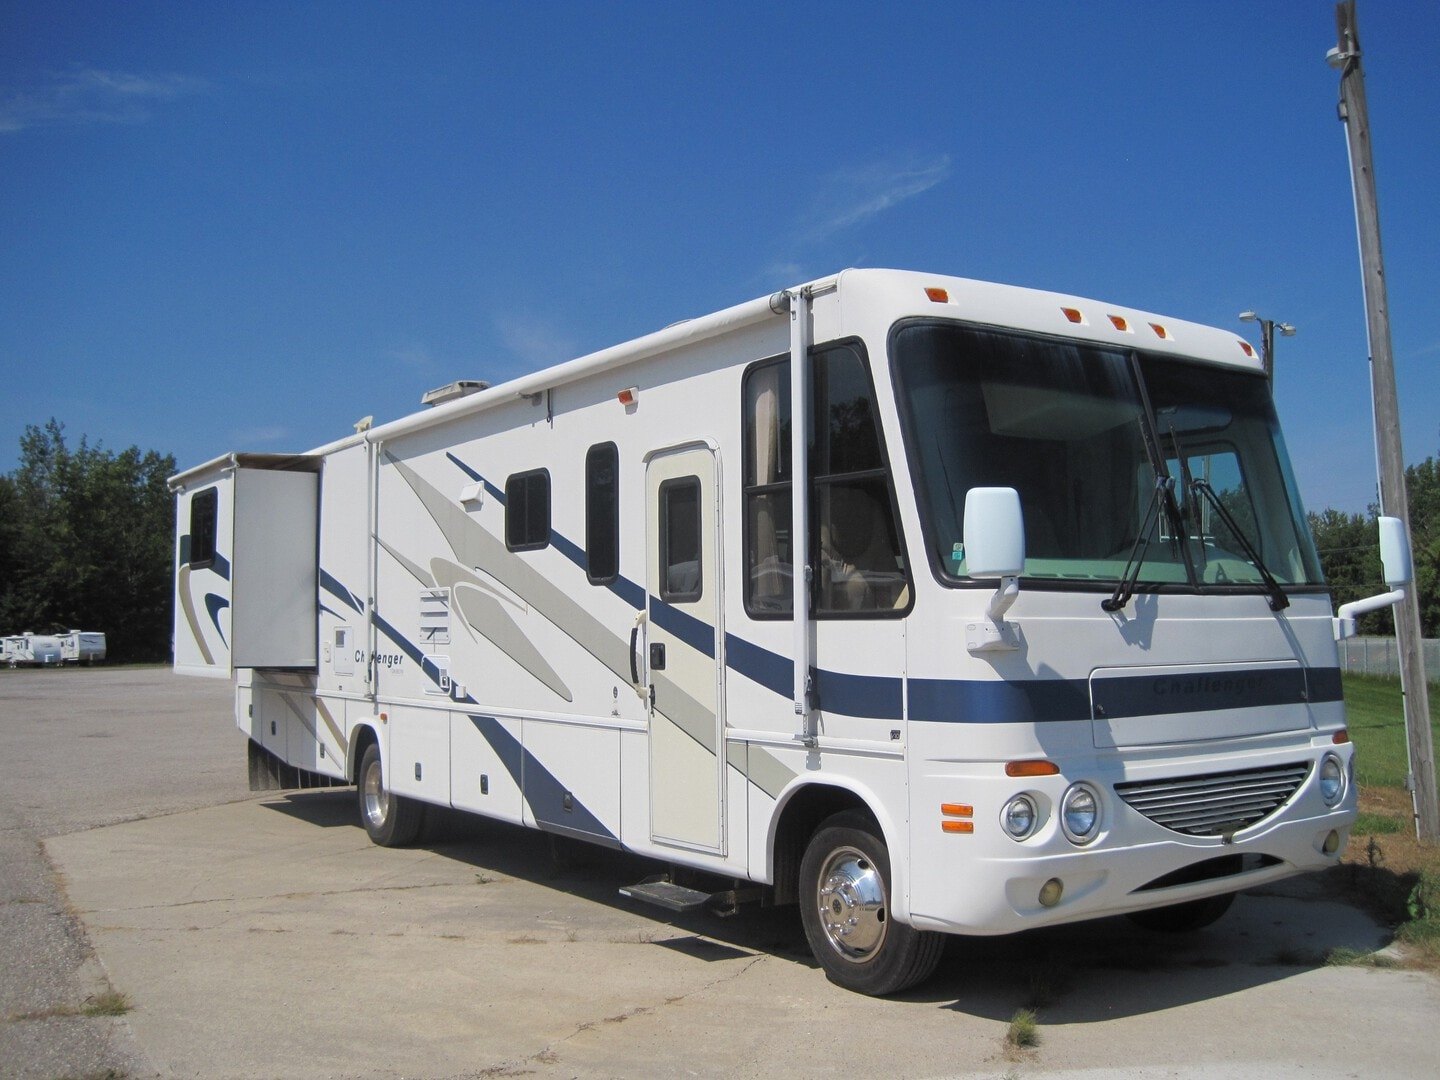 Used, 2004, Challenger by Thor Motor Coach, 348F, RV - Class A